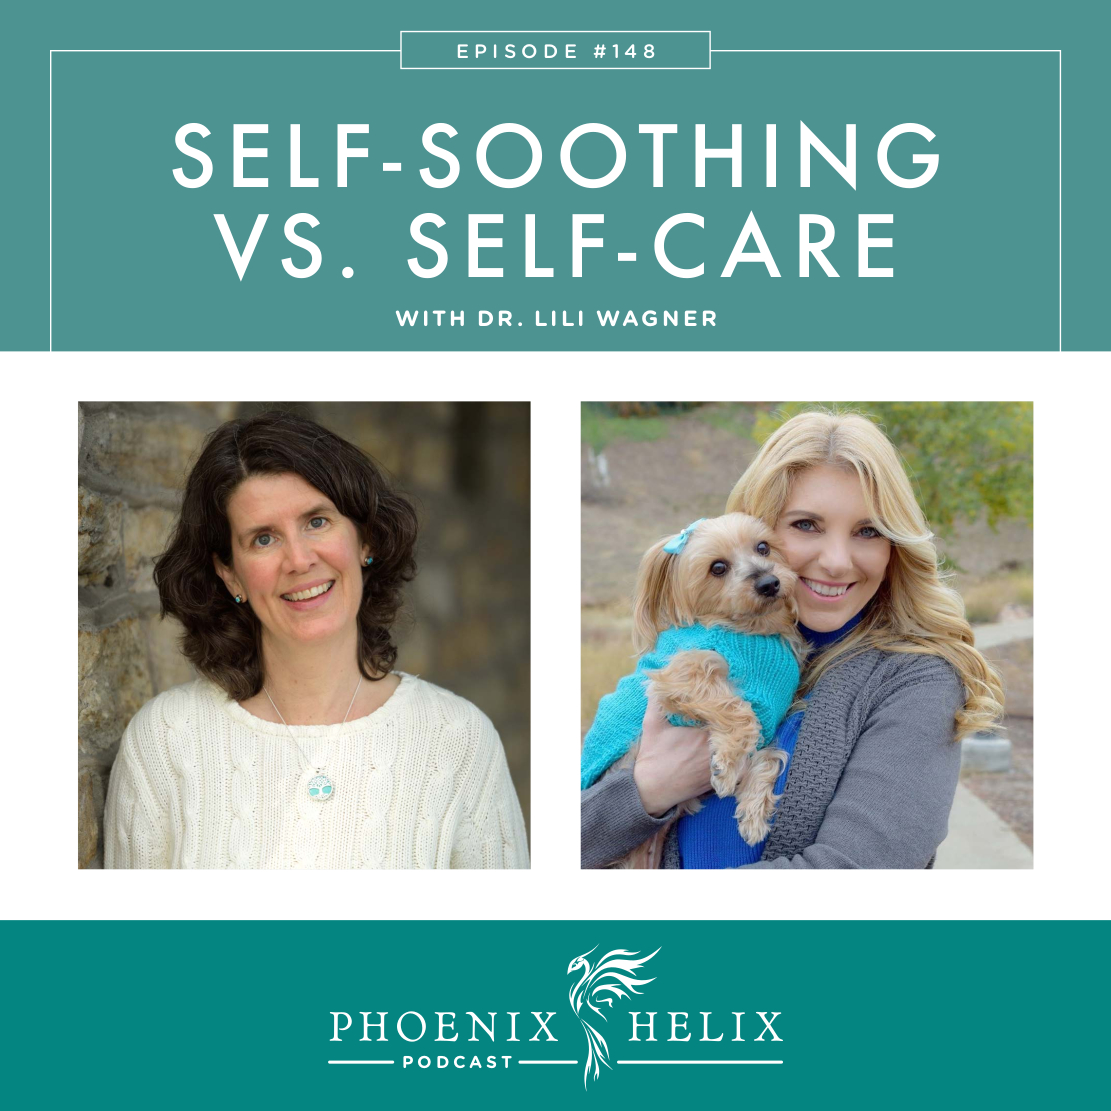 Self-Soothing vs. Self-Care with Dr. Lili Wagner | Phoenix Helix Podcast